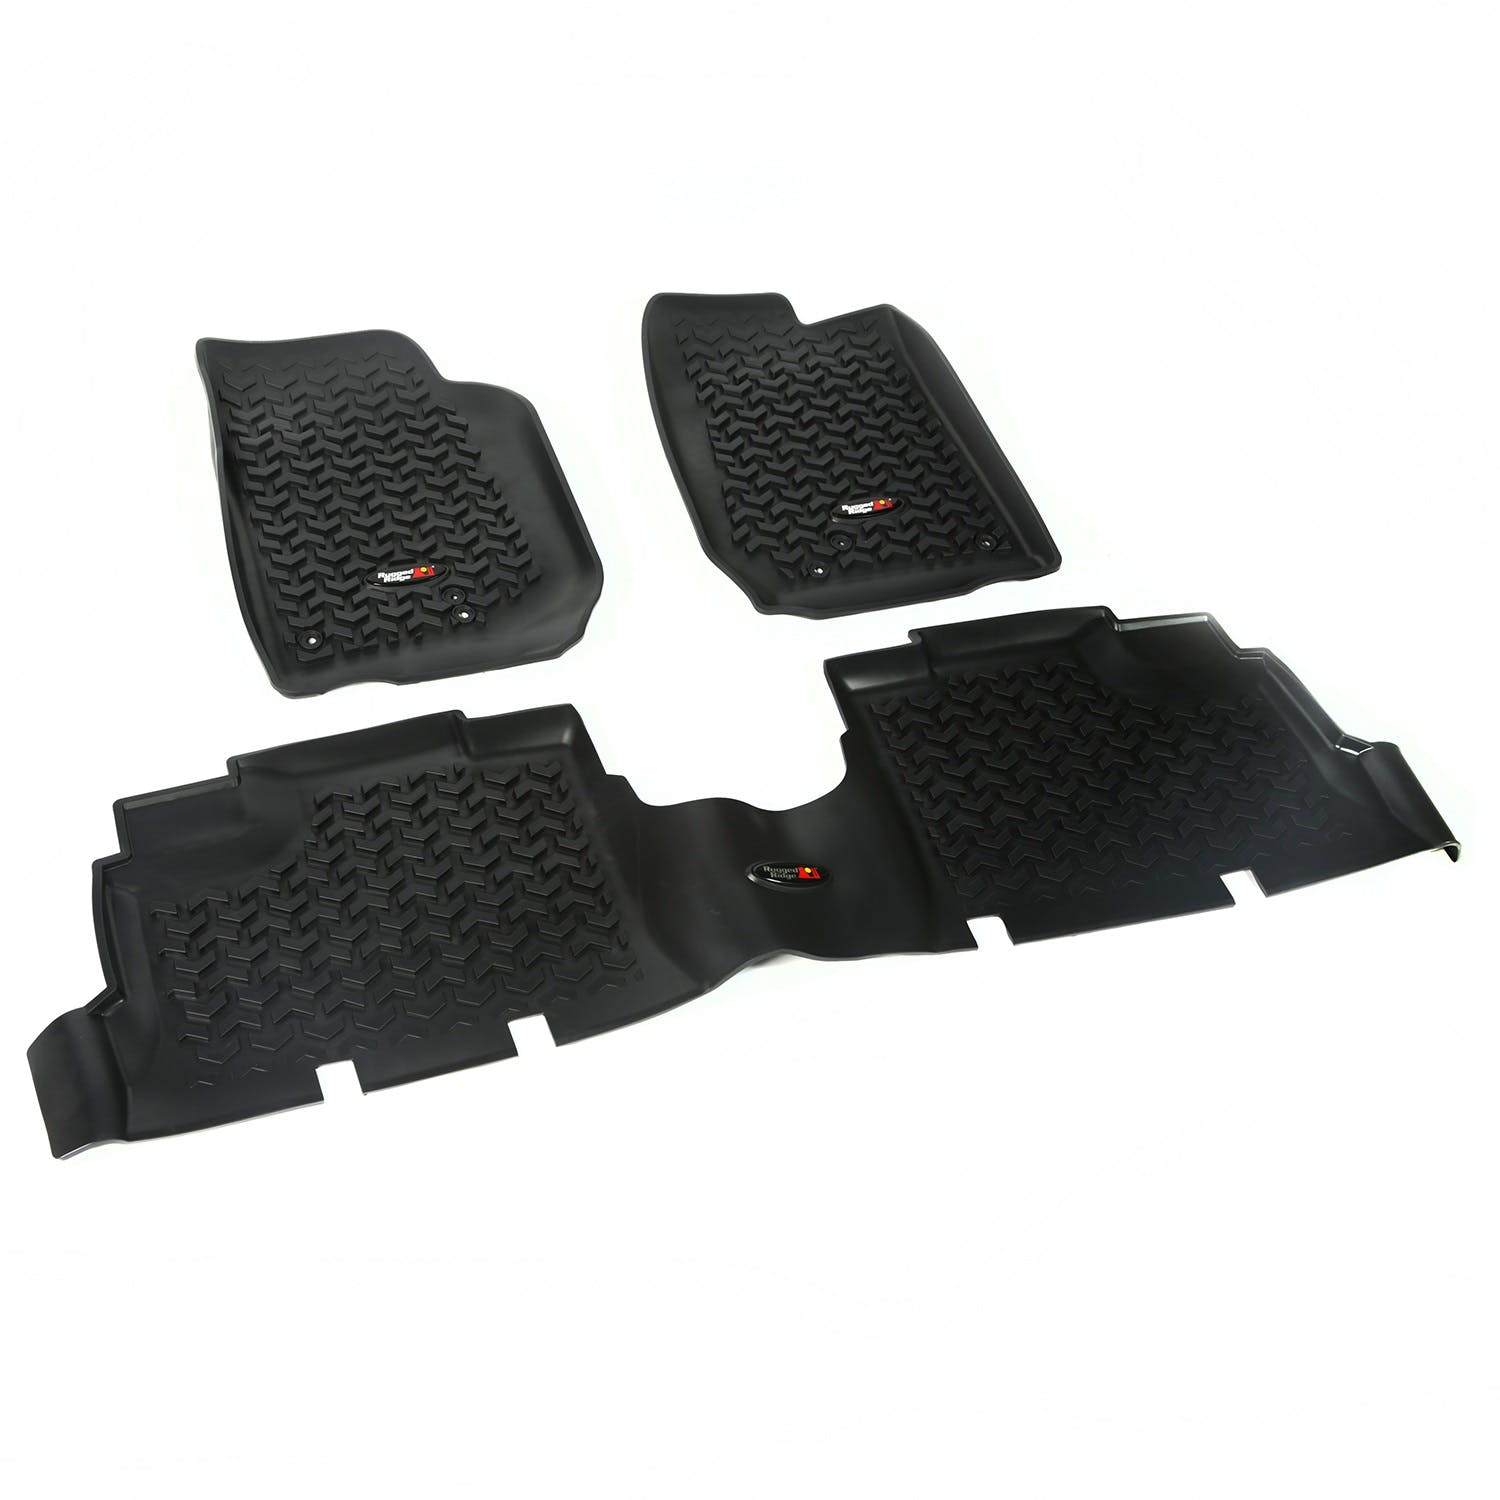 Rugged Ridge All-Terrain 12987.22 Black Front and Rear Floor Liner Kit For Select Jeep Grand Cherokee Models